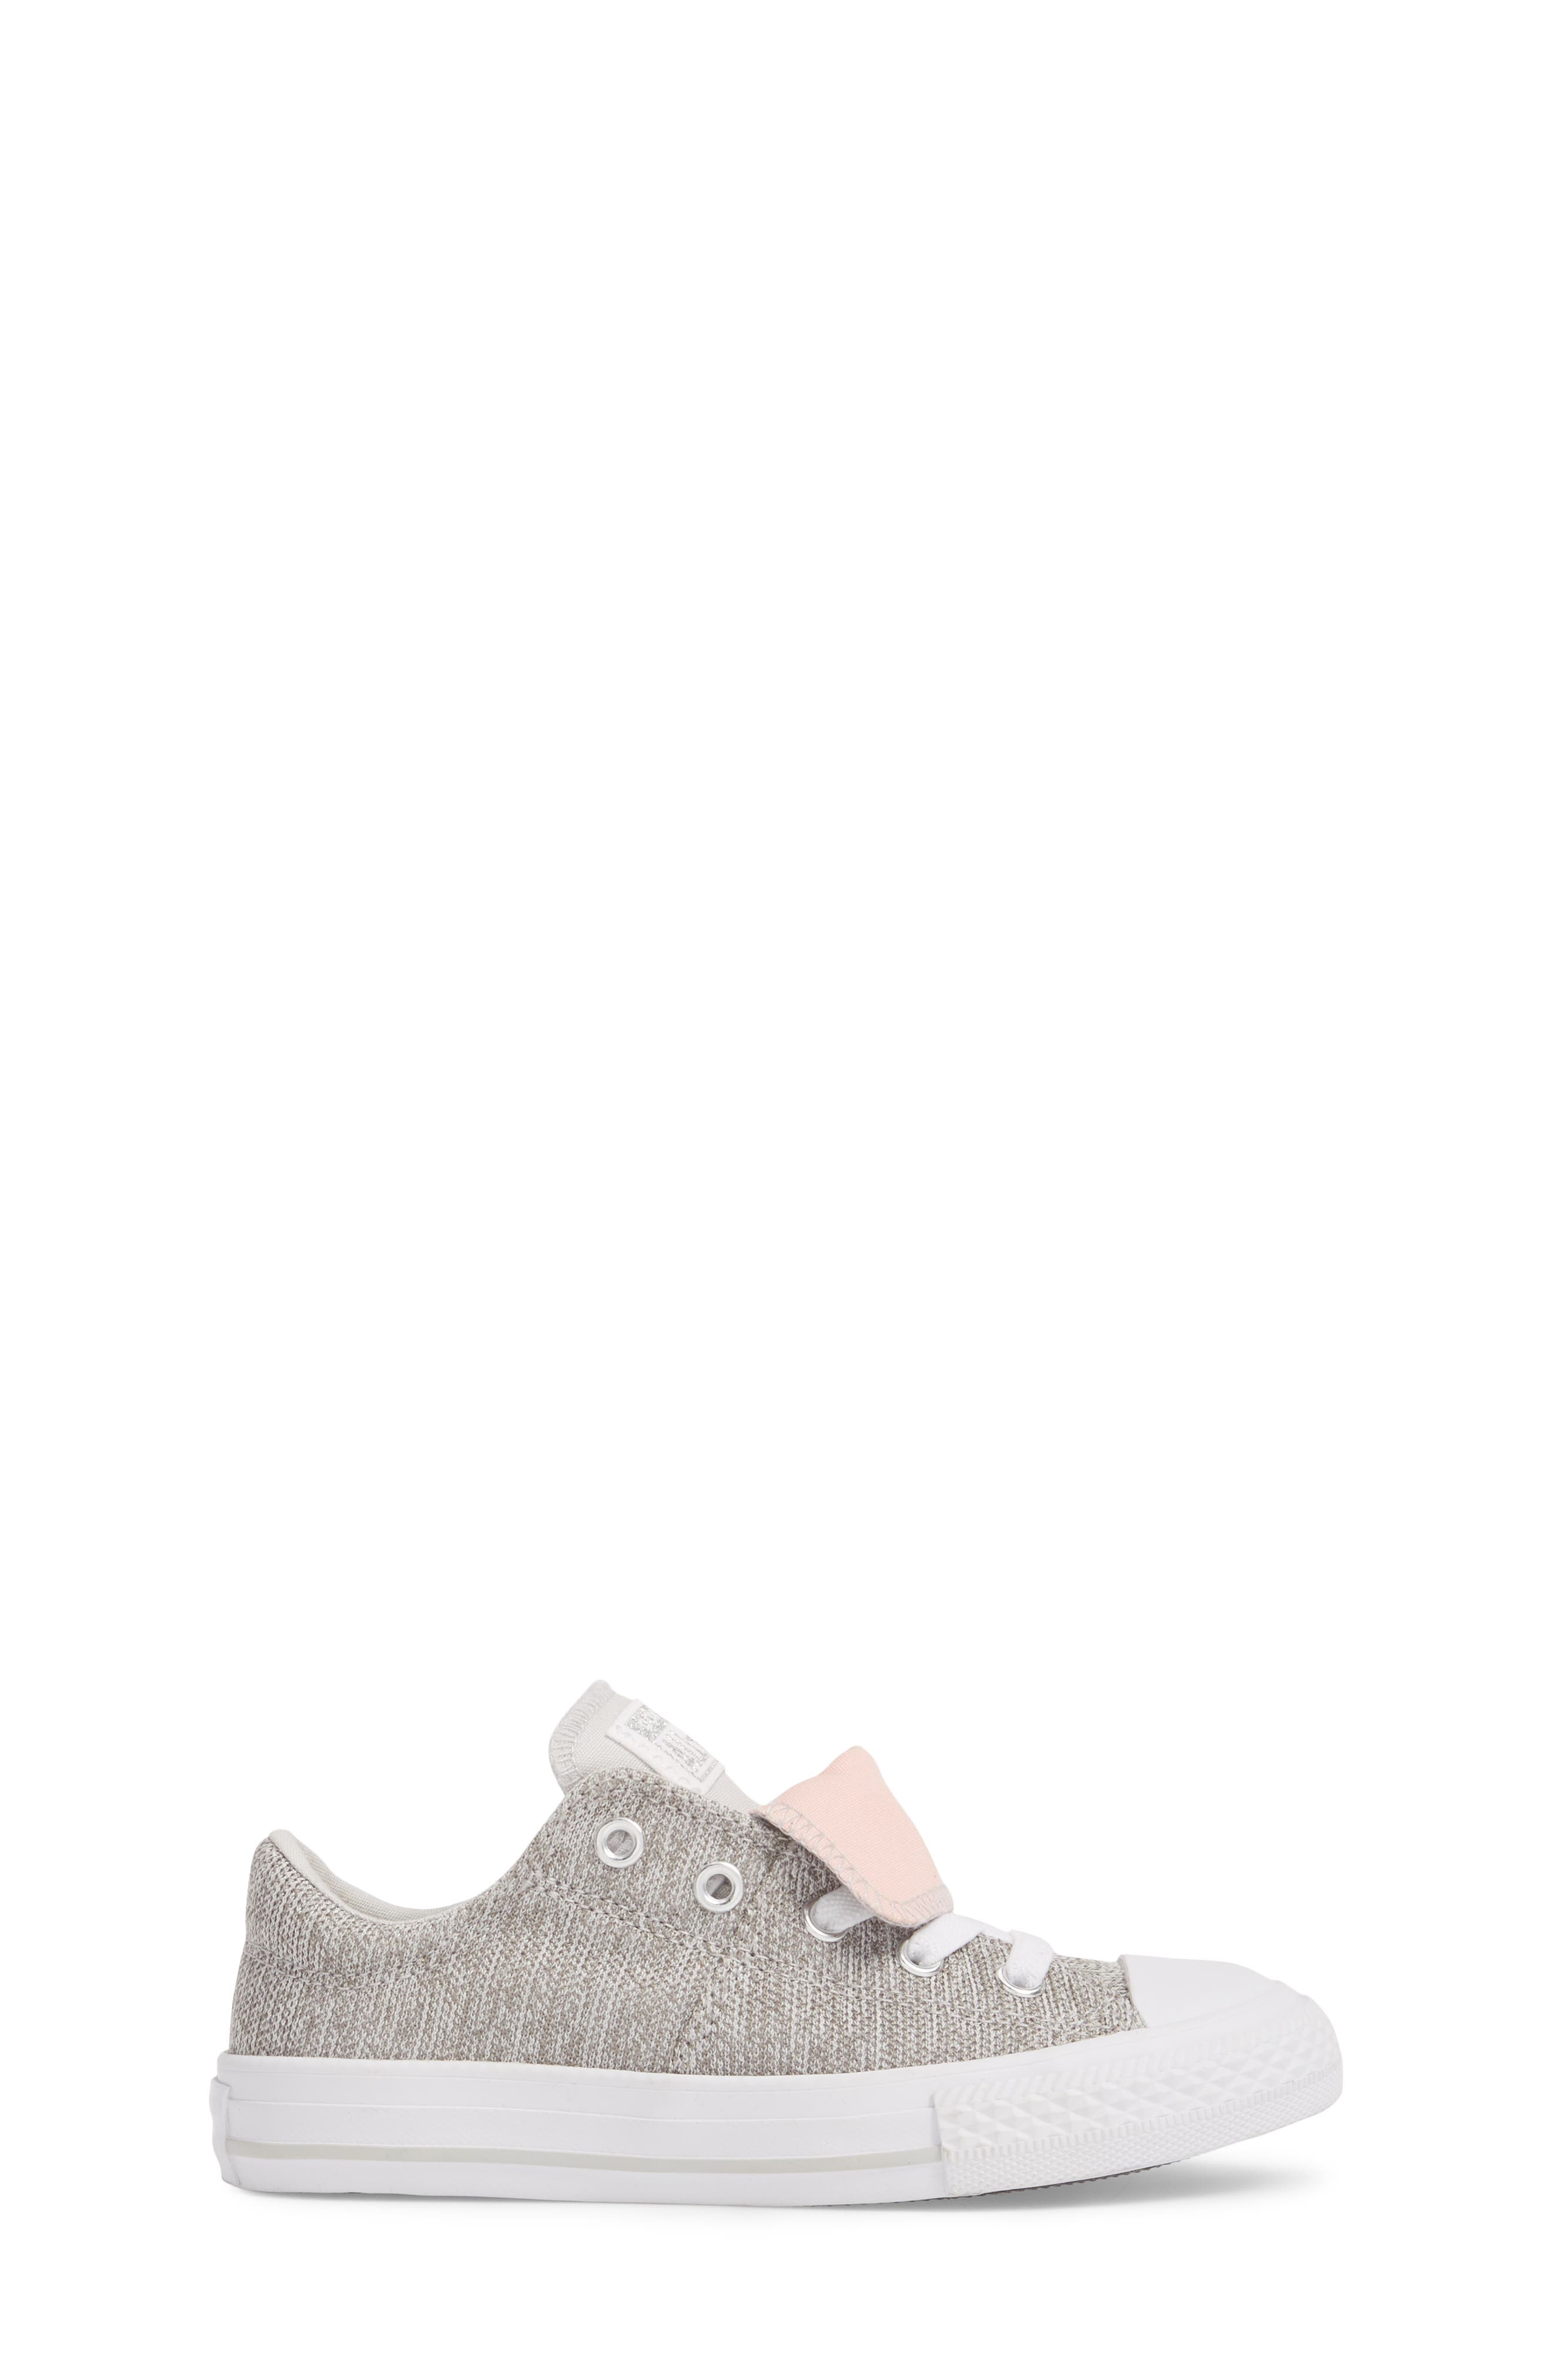 ,                             Chuck Taylor<sup>®</sup> All Star<sup>®</sup> Maddie Double Tongue Sneaker,                             Alternate thumbnail 15, color,                             050